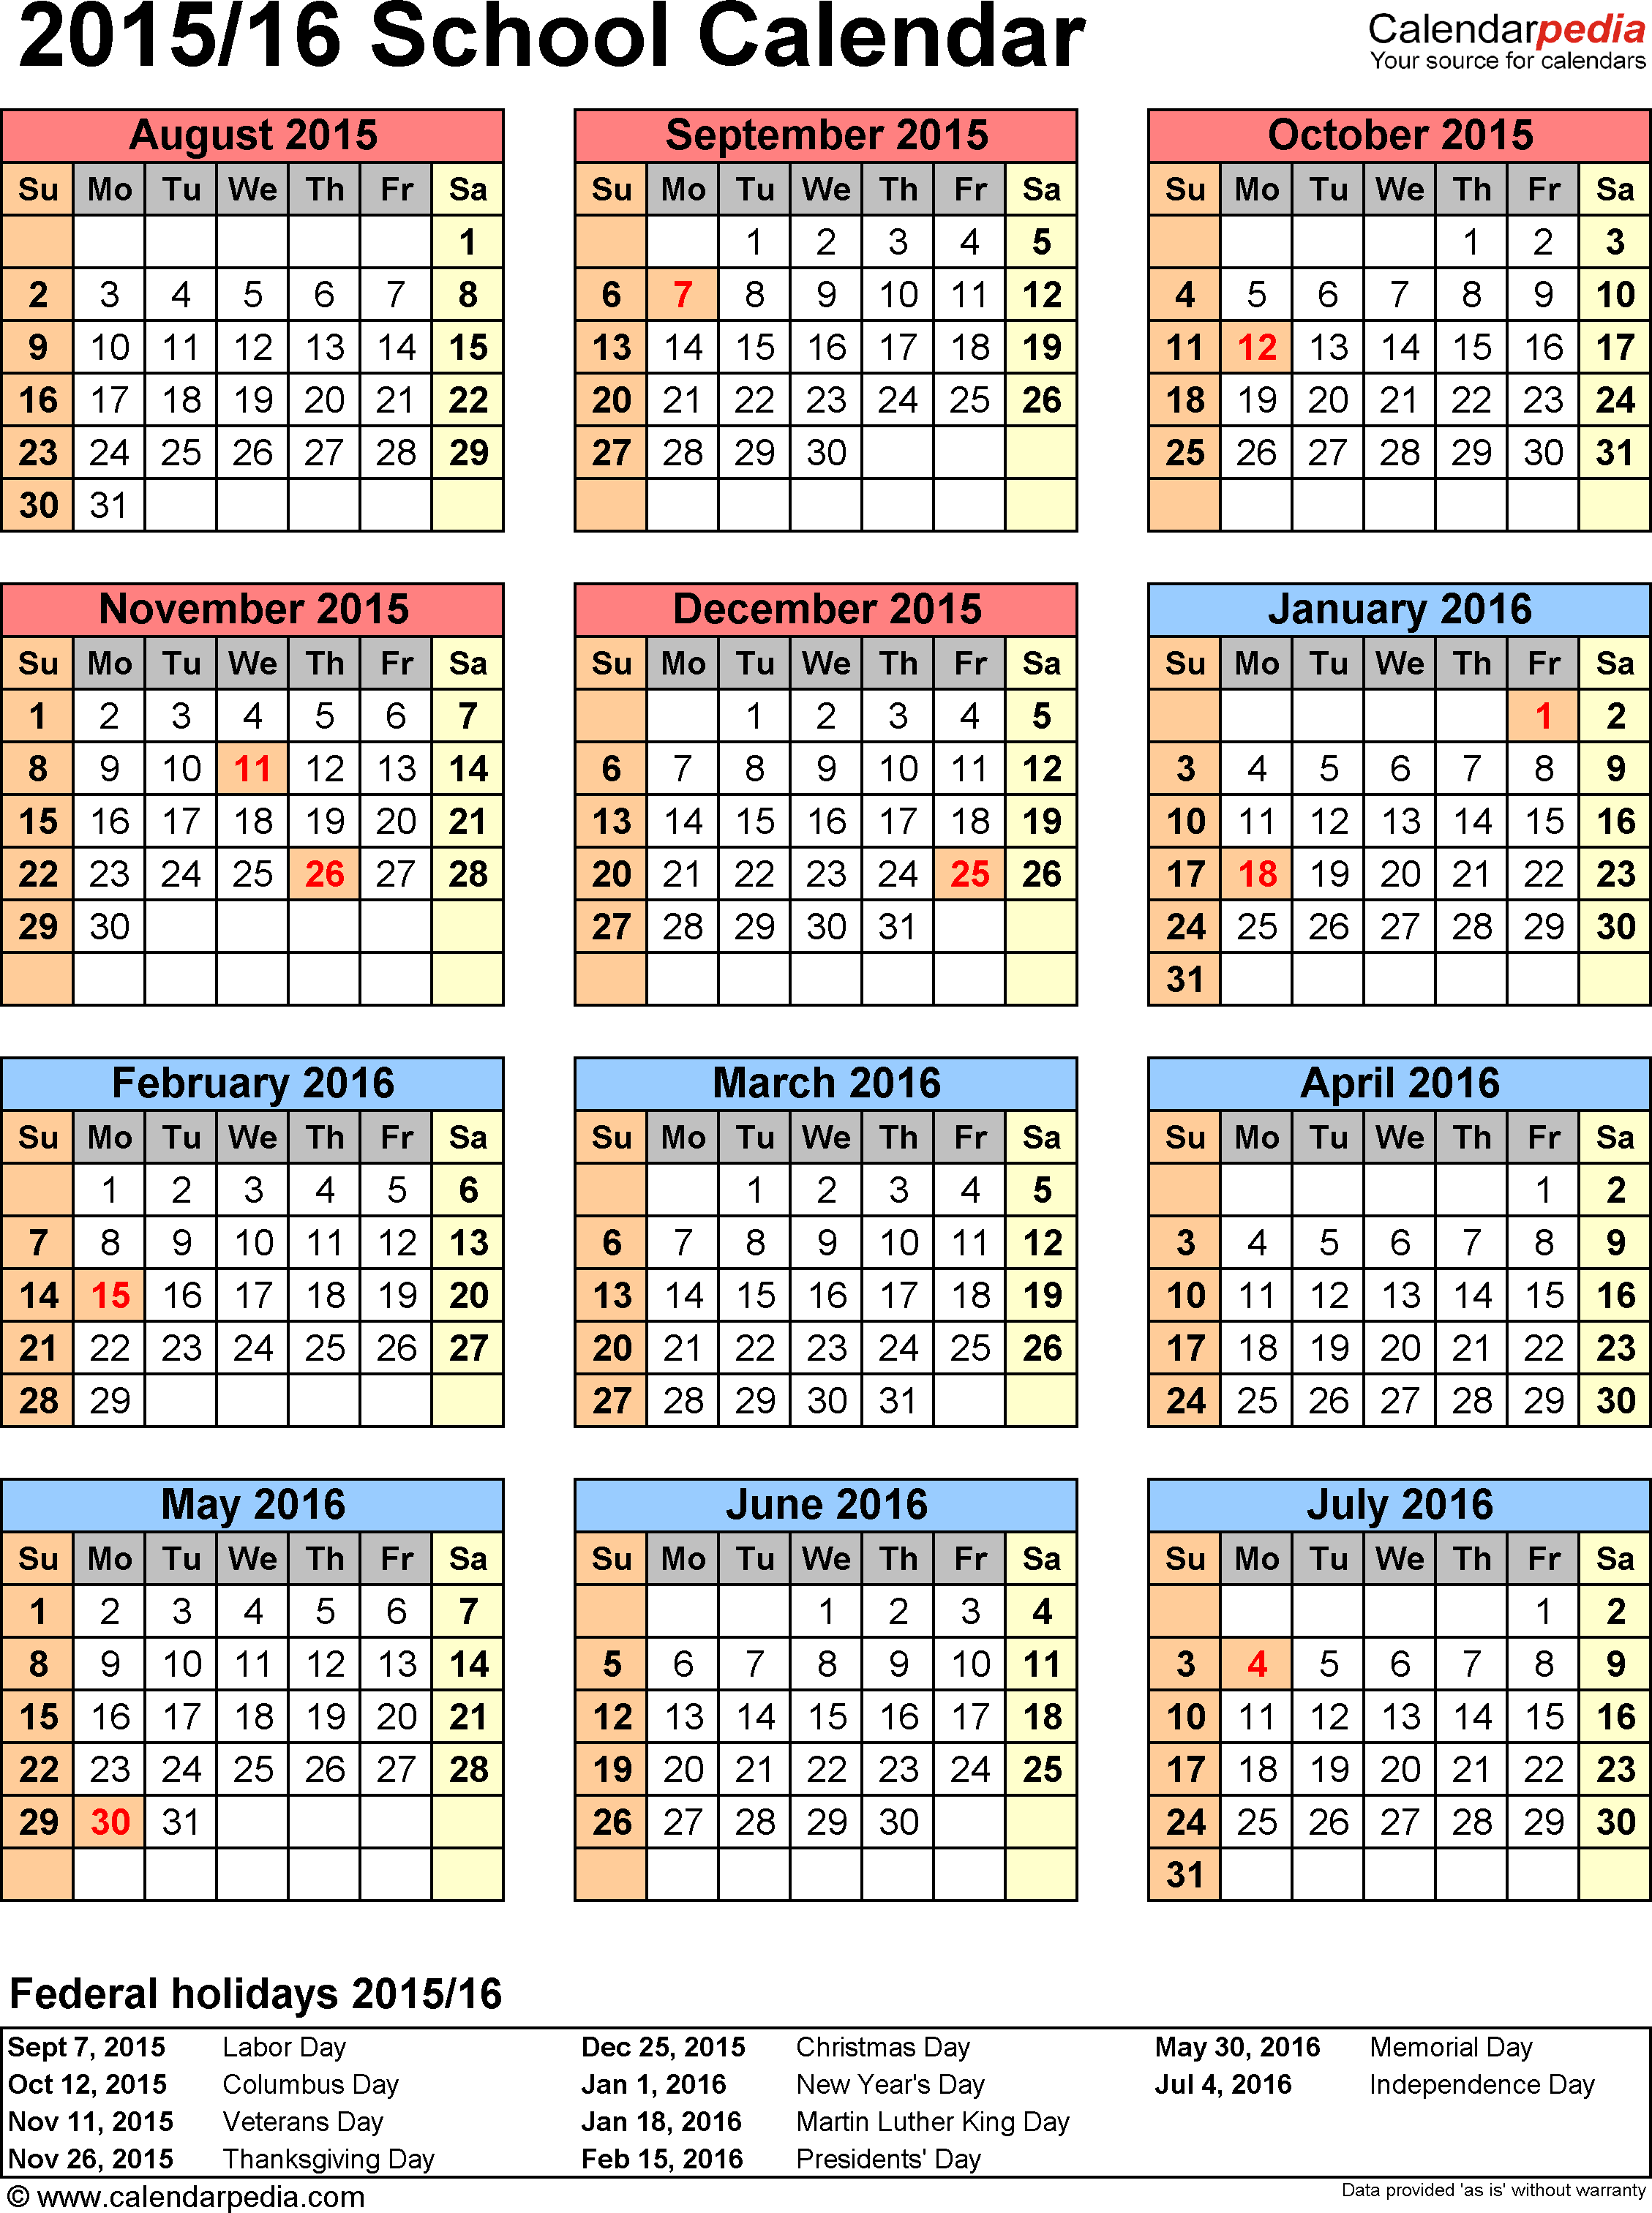 Template 7: School calendar 2015/16 for Word, portrait orientation, year at a glance, 1 page